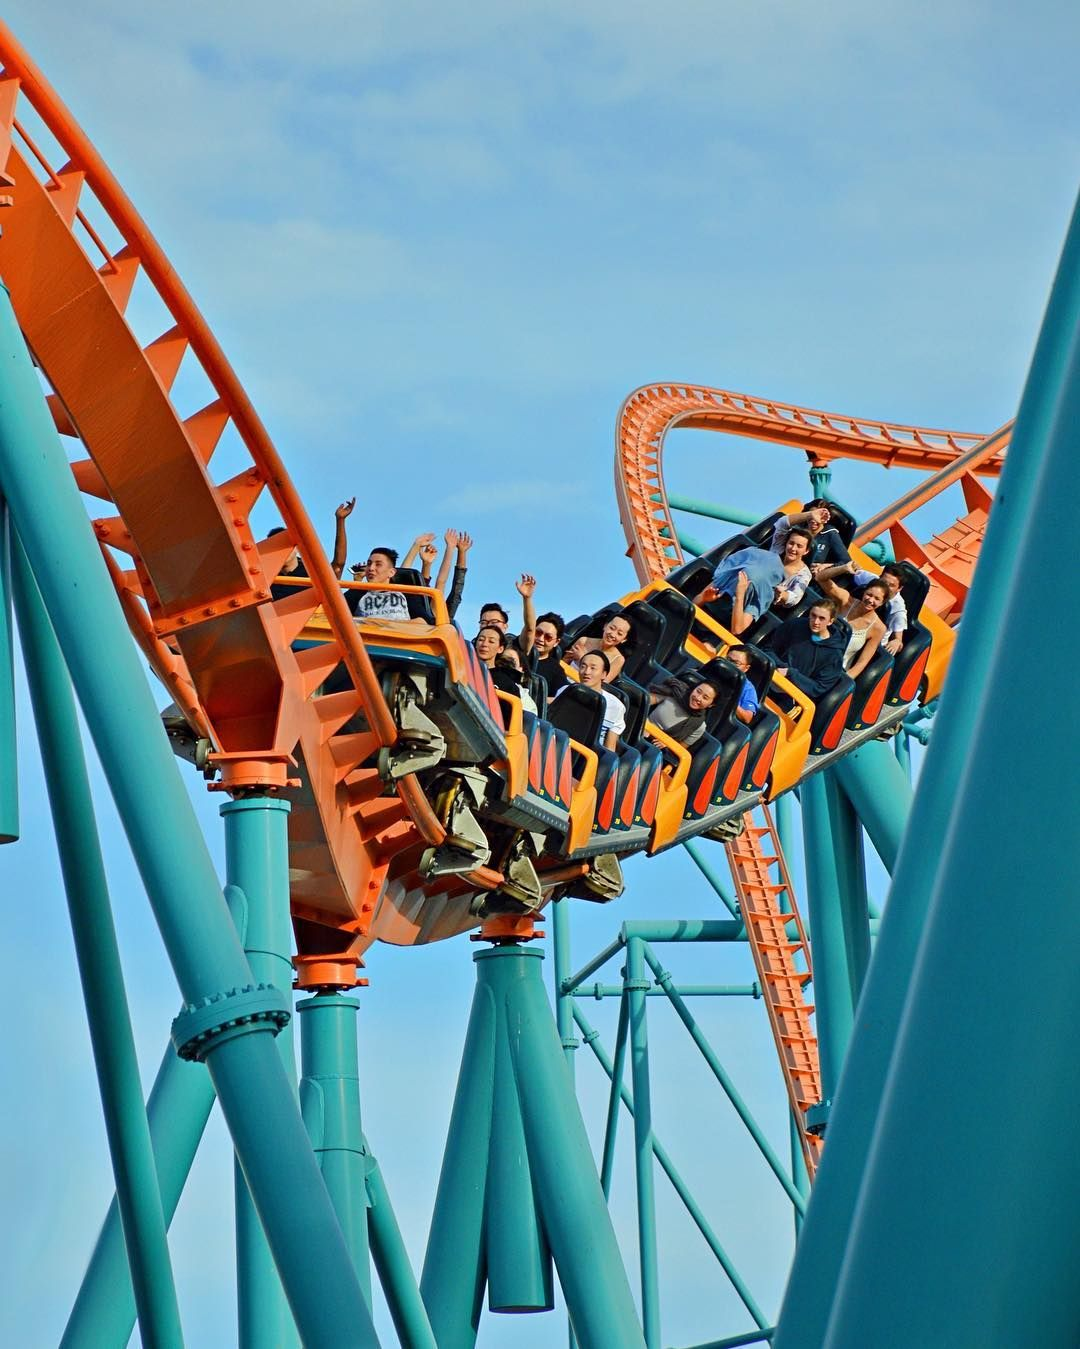 Criticized By Many Goliath At Six Flags Magic Mountain Still Provides An Ultra Smooth And Thrilling Ride Experience Wh In 2020 Roller Coaster Sea World Amusement Park